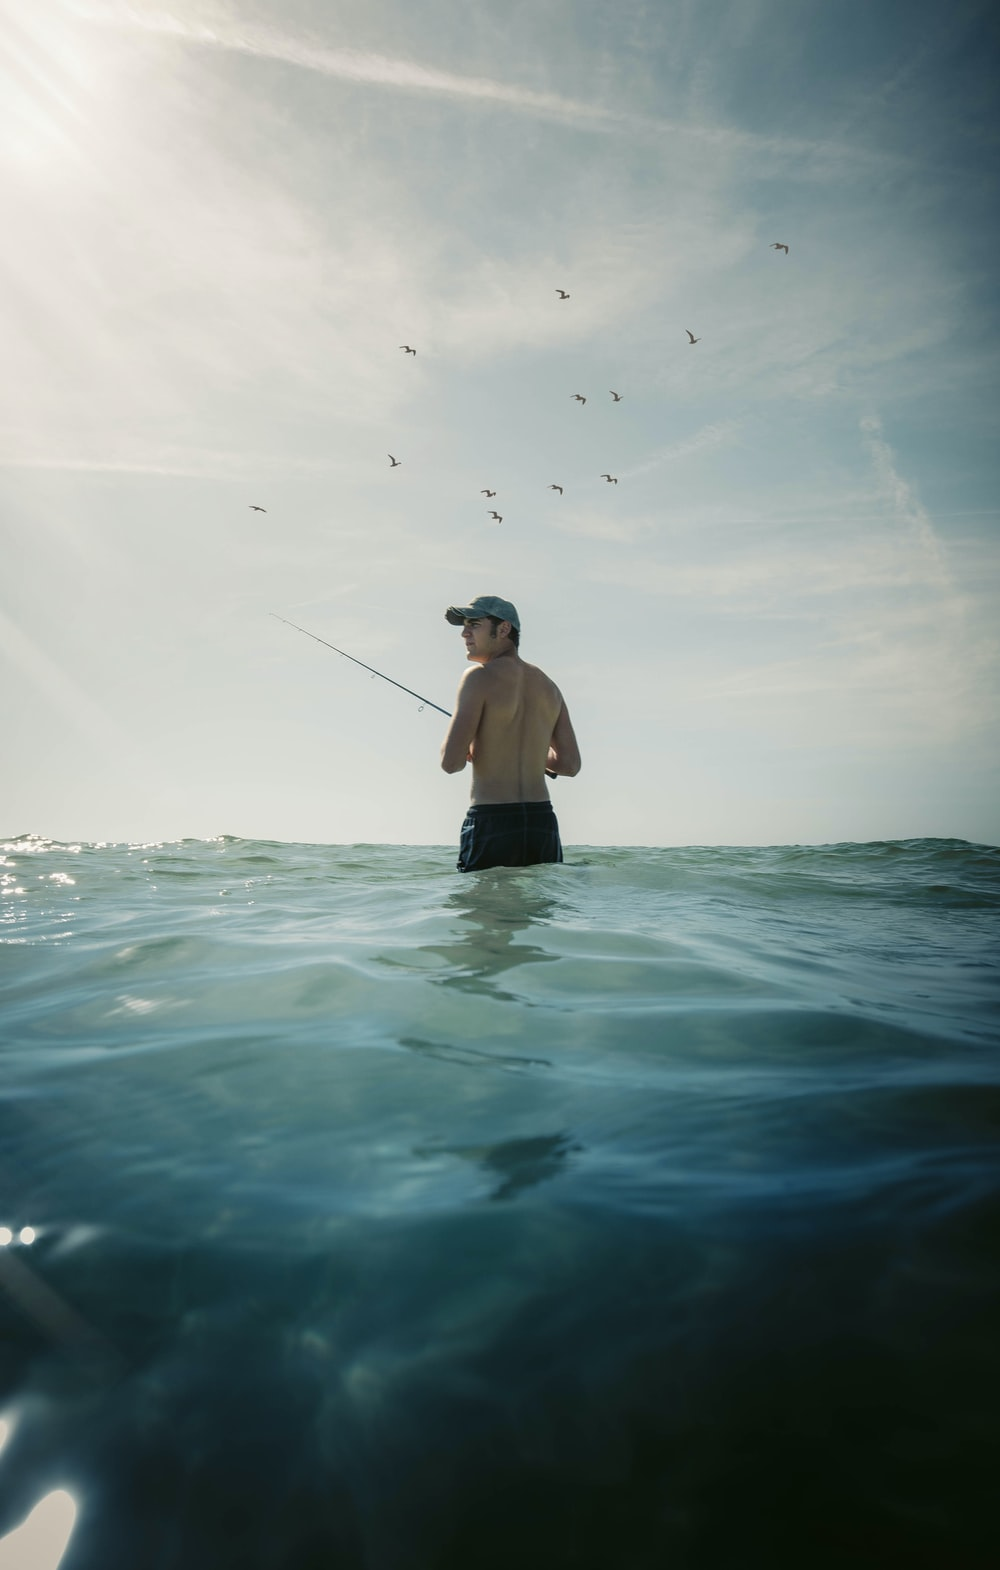 man in black shorts holding black fishing rod in water